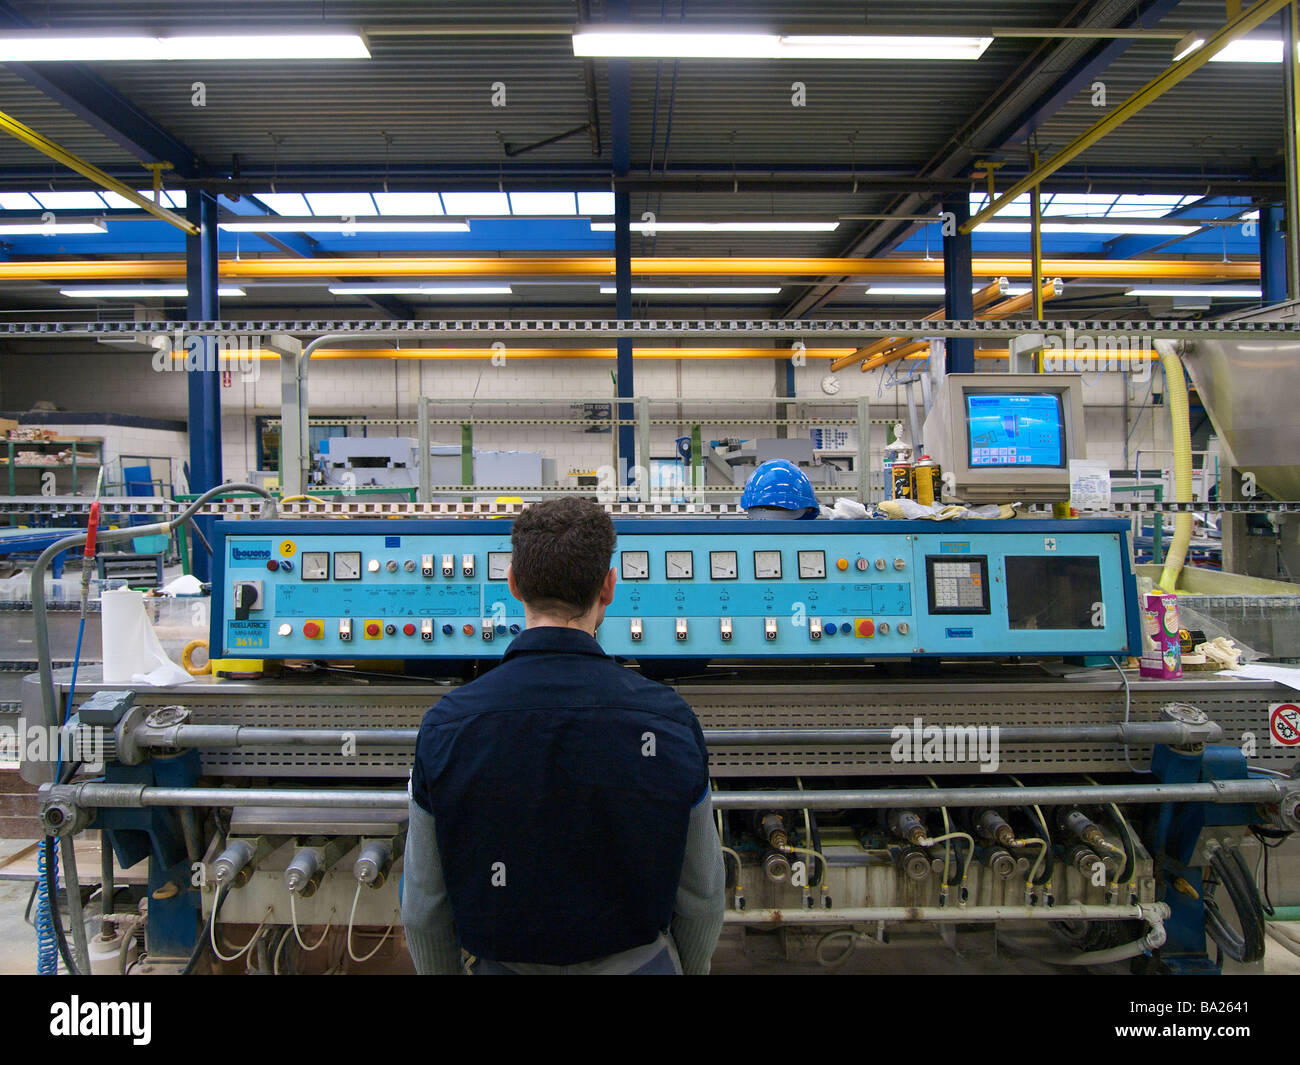 Man at control panel of industrial machine that is used for making nice edges on glass plates - Stock Image